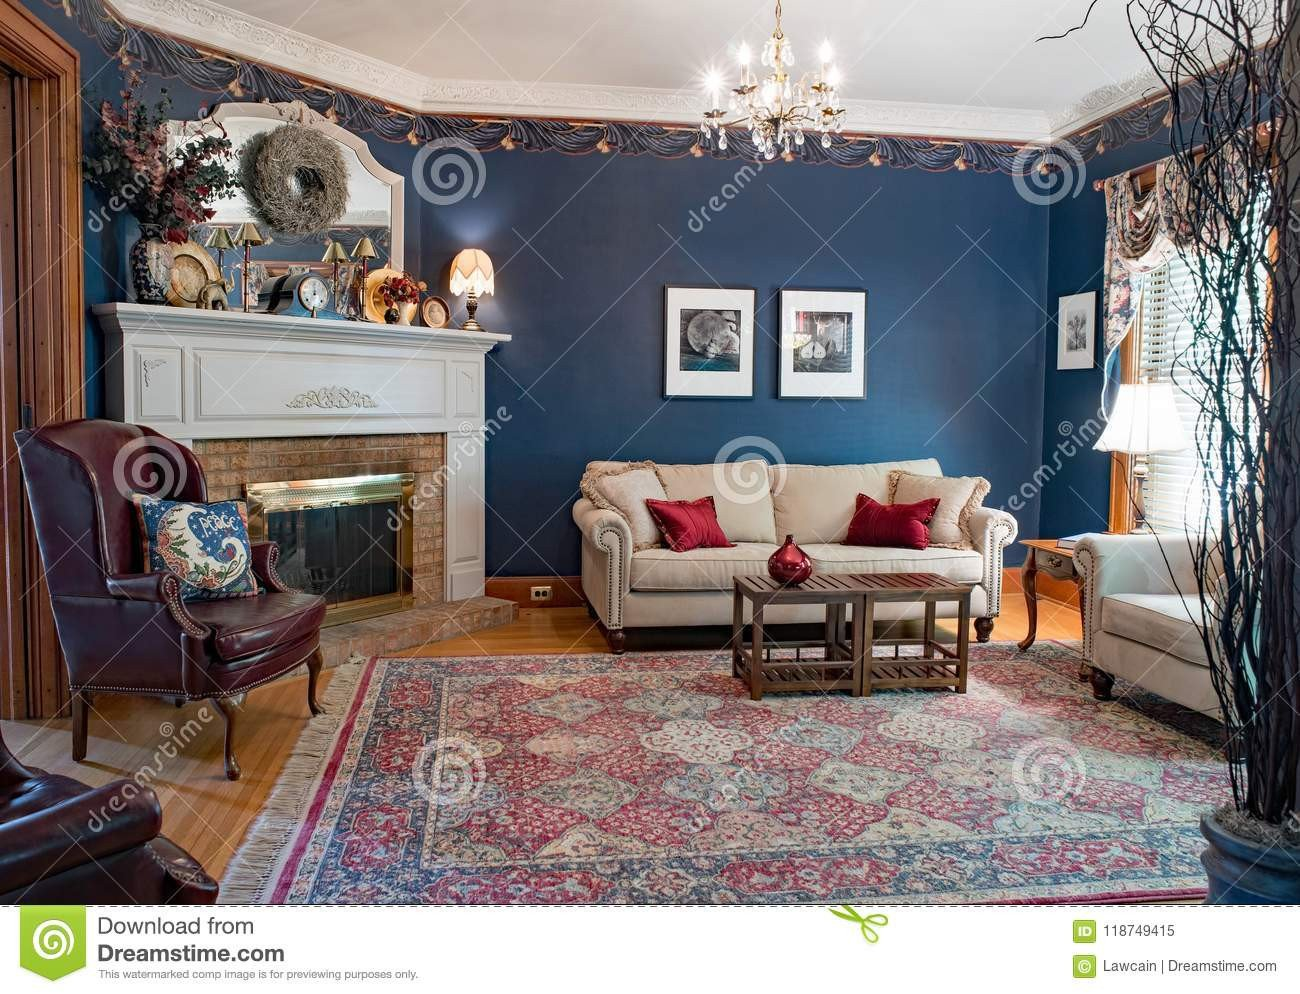 Burgundy and Gray Bedroom Inspirational Blue Victorian Living Room Editorial Image Image Of Blue